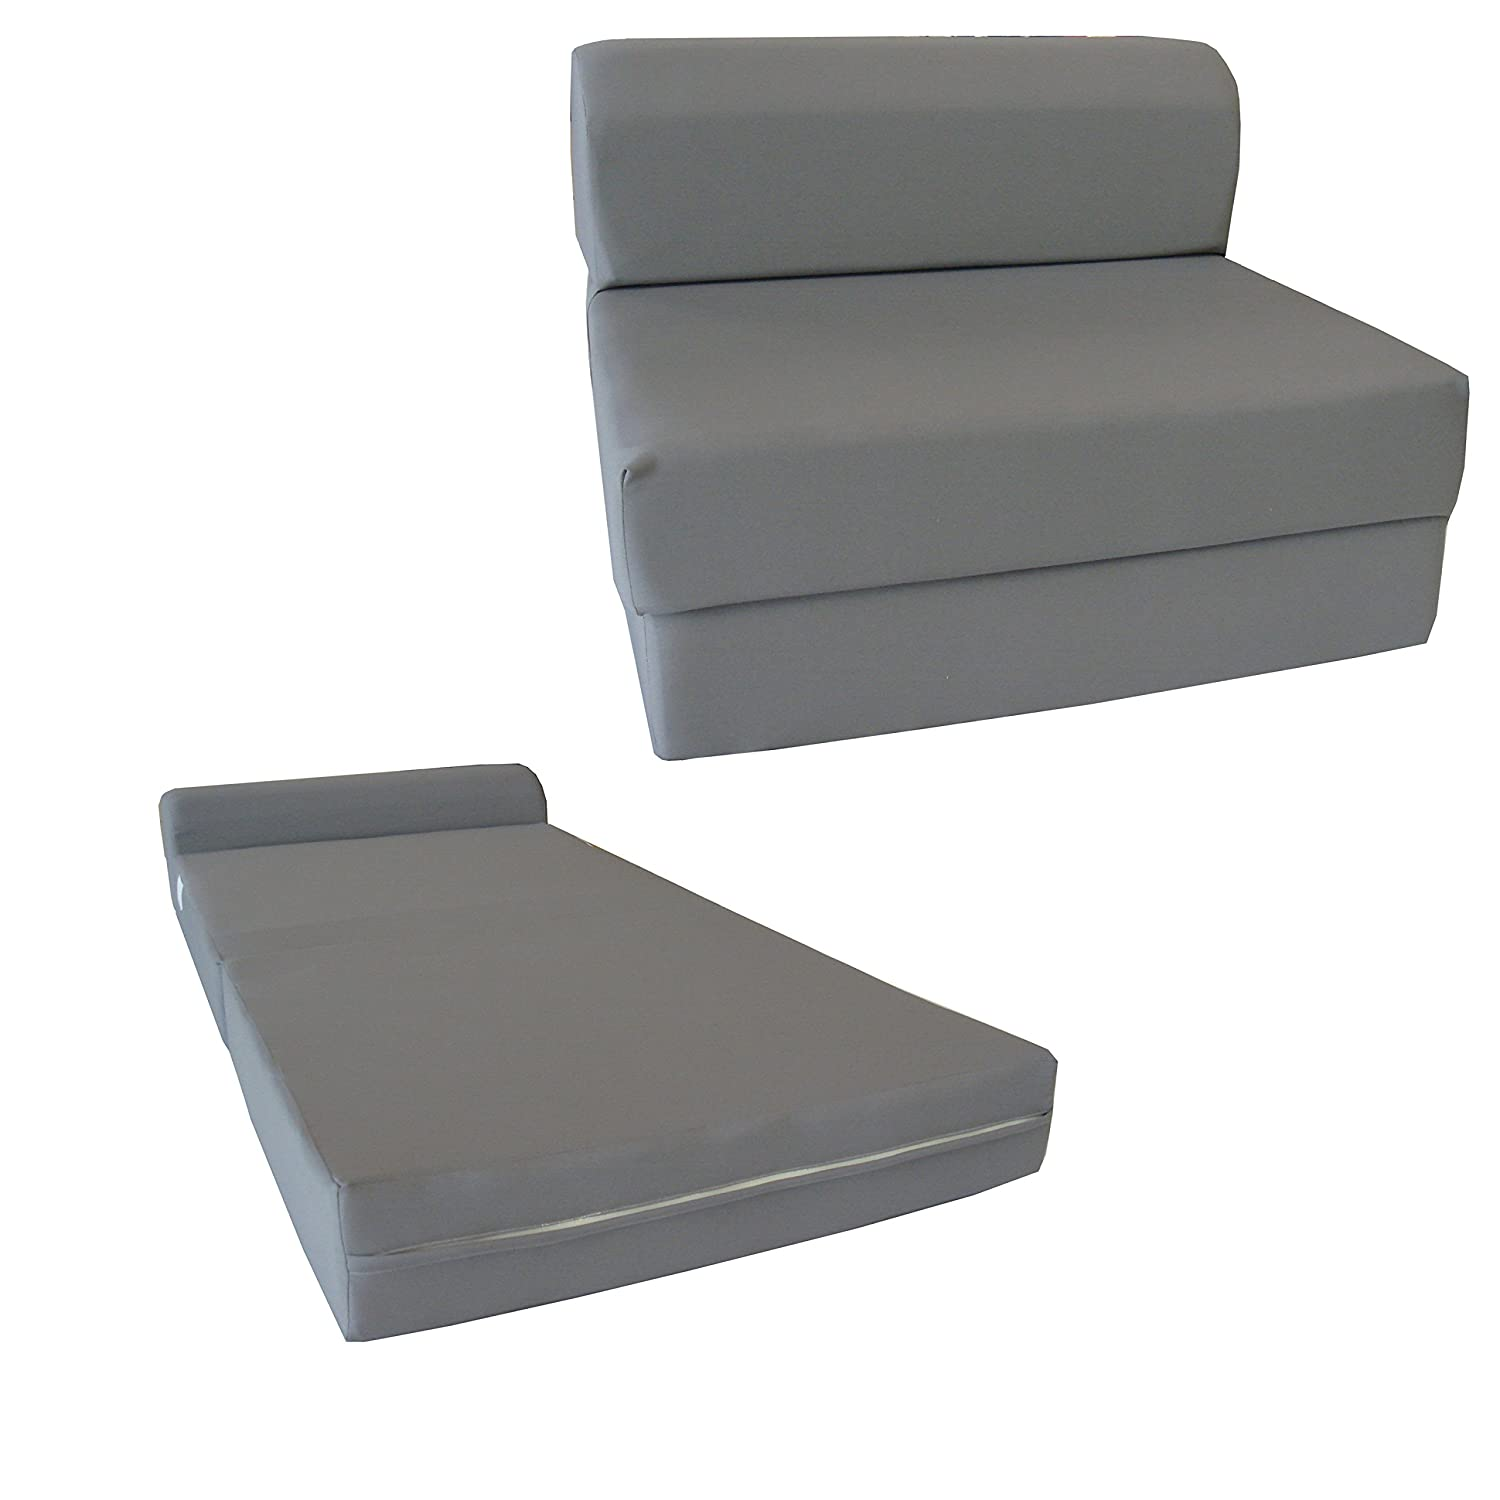 "Amazon 6"" Thick X 36"" Wide X 70"" Long Twin Size Gray Sleeper"